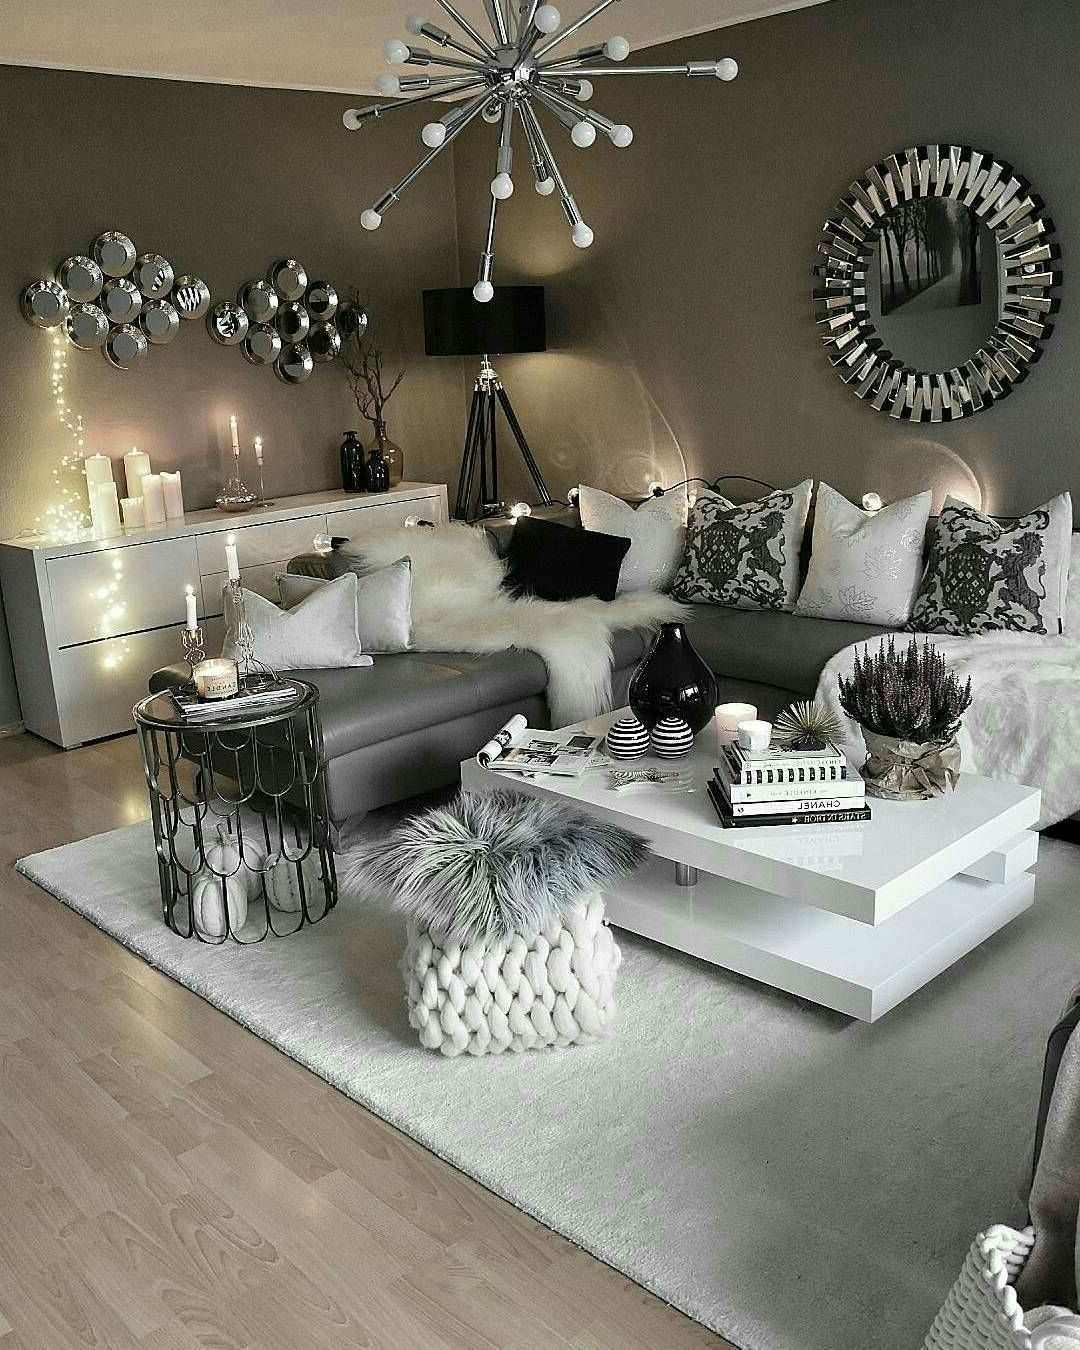 Only Furniture: Glamorous Monochromatic Living Room Ideas 40+ Monochrome Living Room Decorating Inspirations